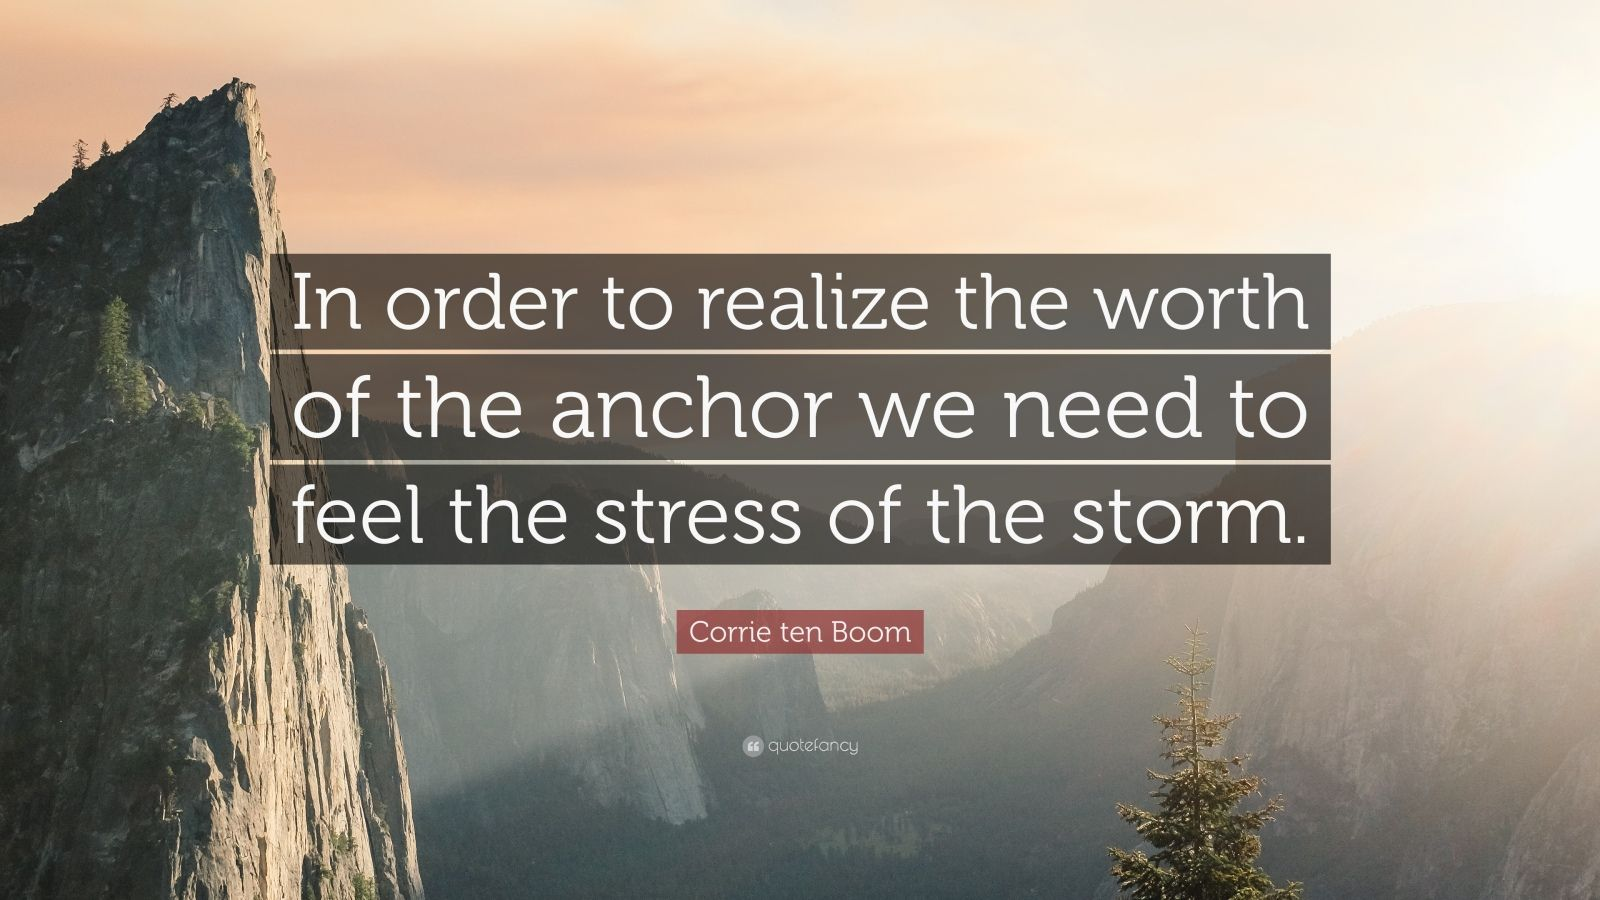 """Corrie ten Boom Quote: """"In order to realize the worth of the anchor we need to feel the stress of the storm."""""""